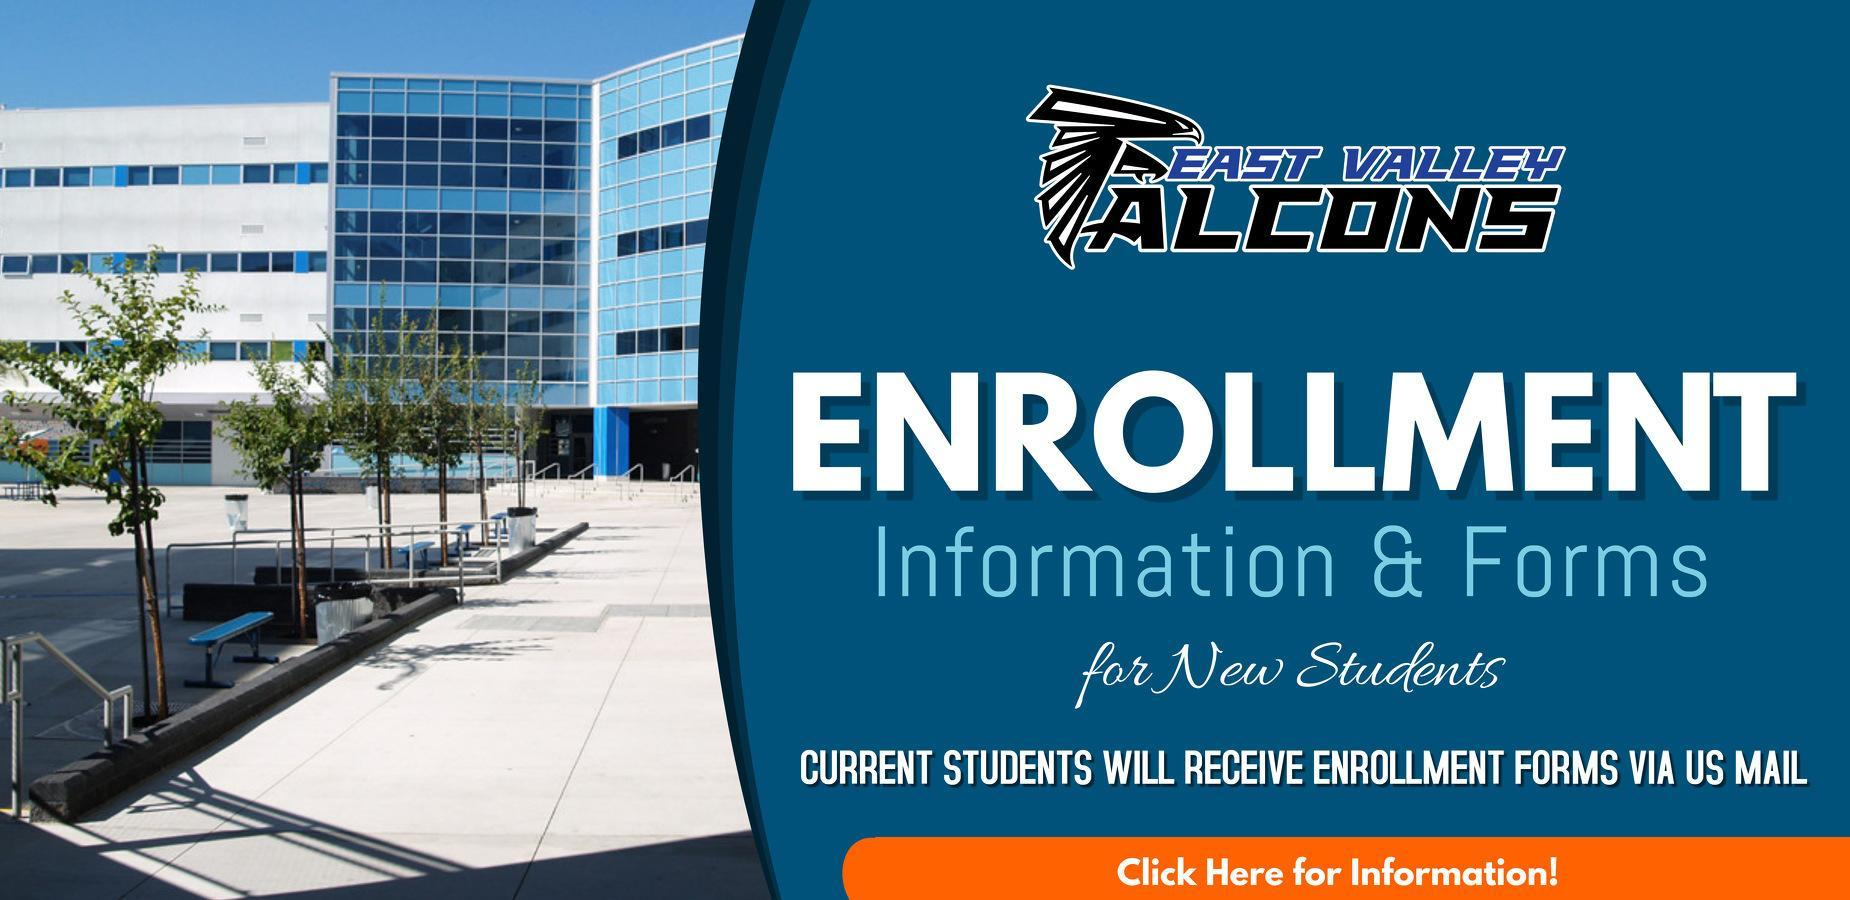 Enrollment Information for New Students